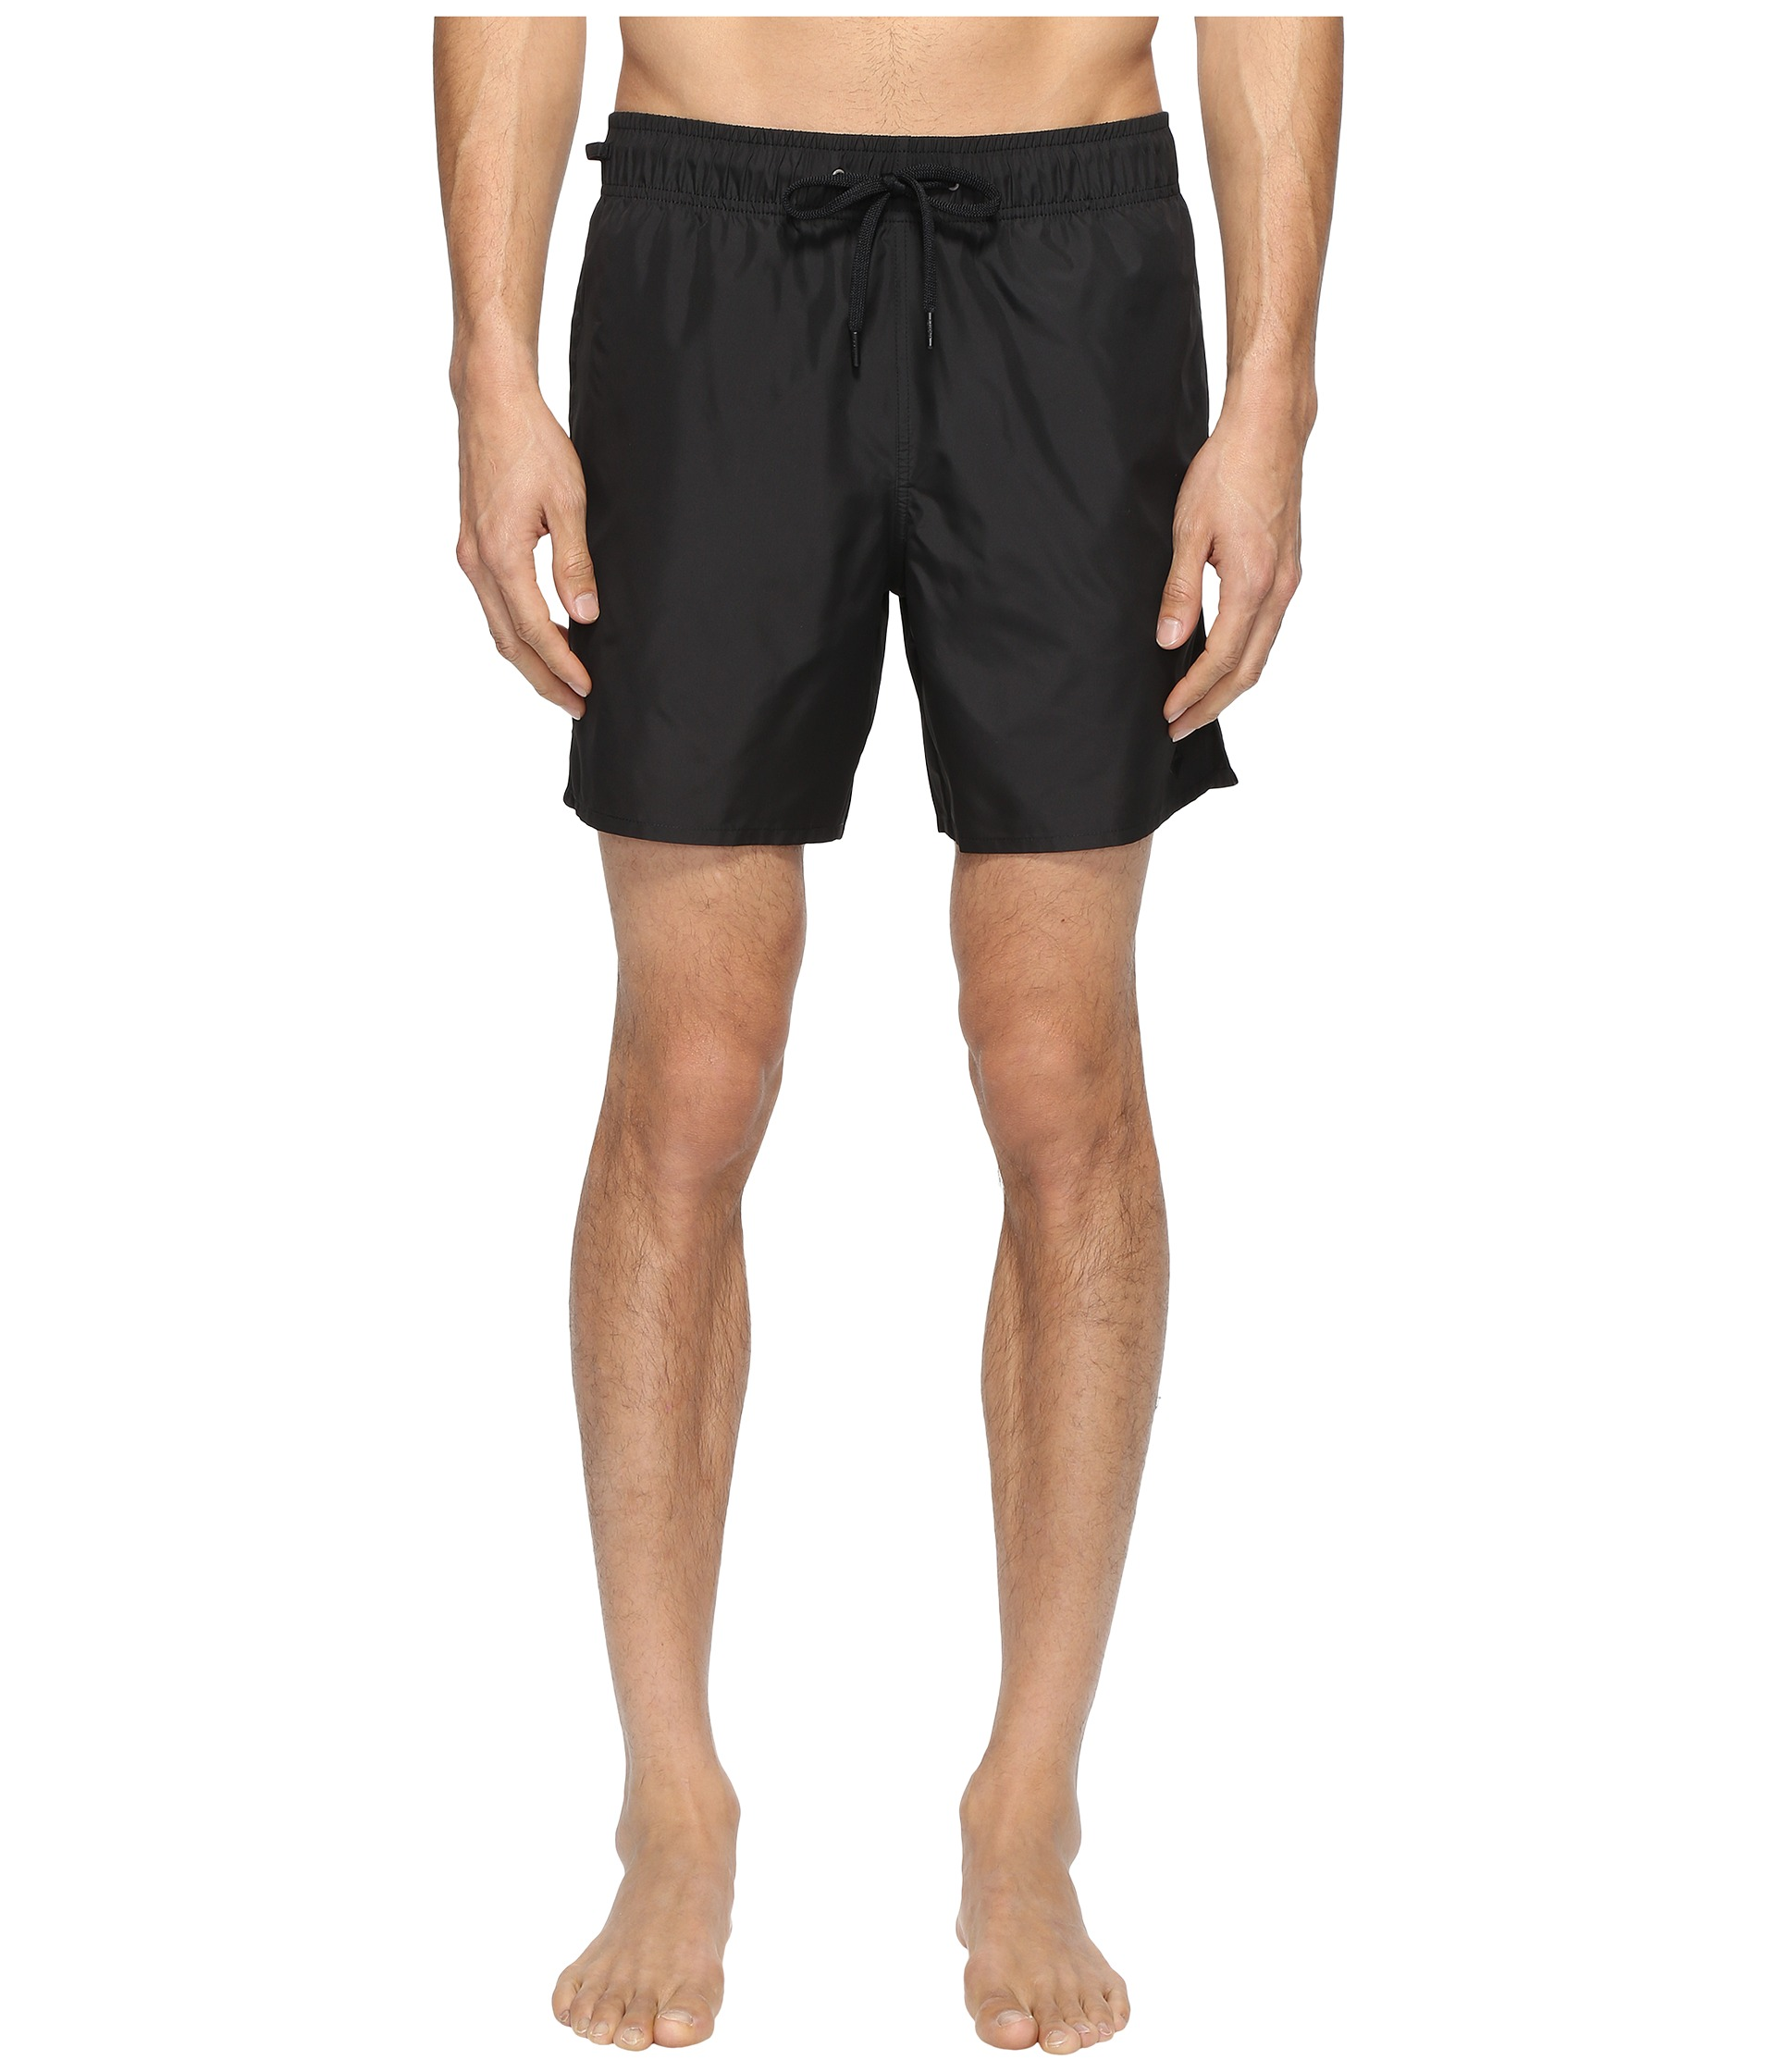 6 Inch Inseam Mens Shorts, Khaki | Shipped Free at Zappos